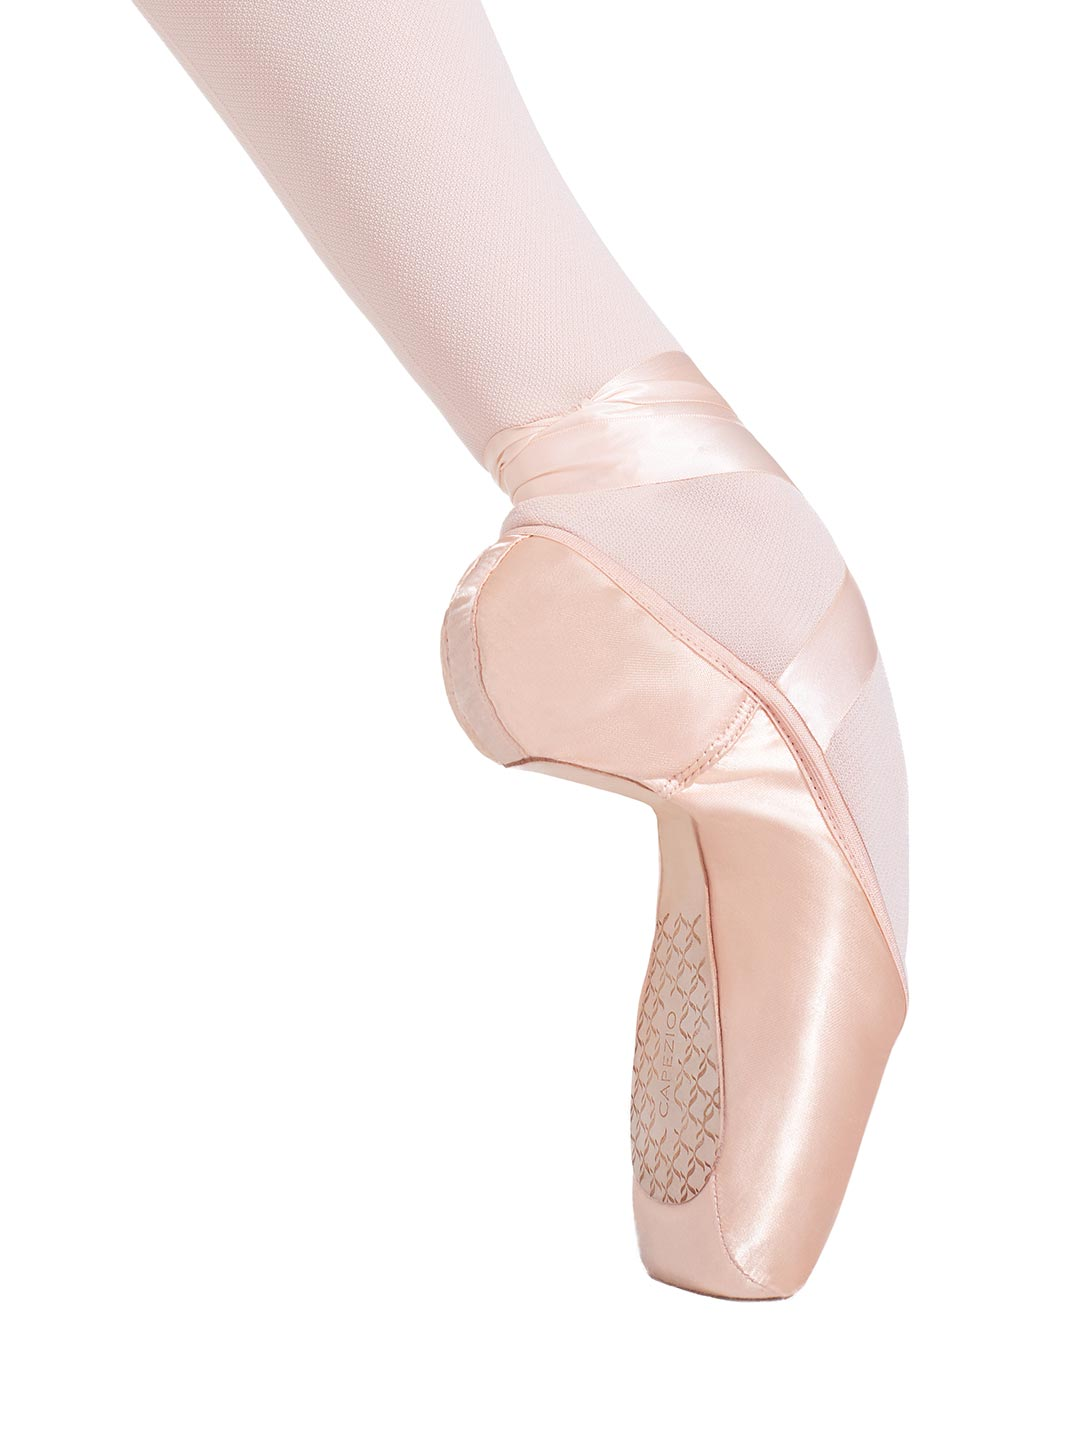 Cambré Tapered Toe #4 Shank Pointe Shoe